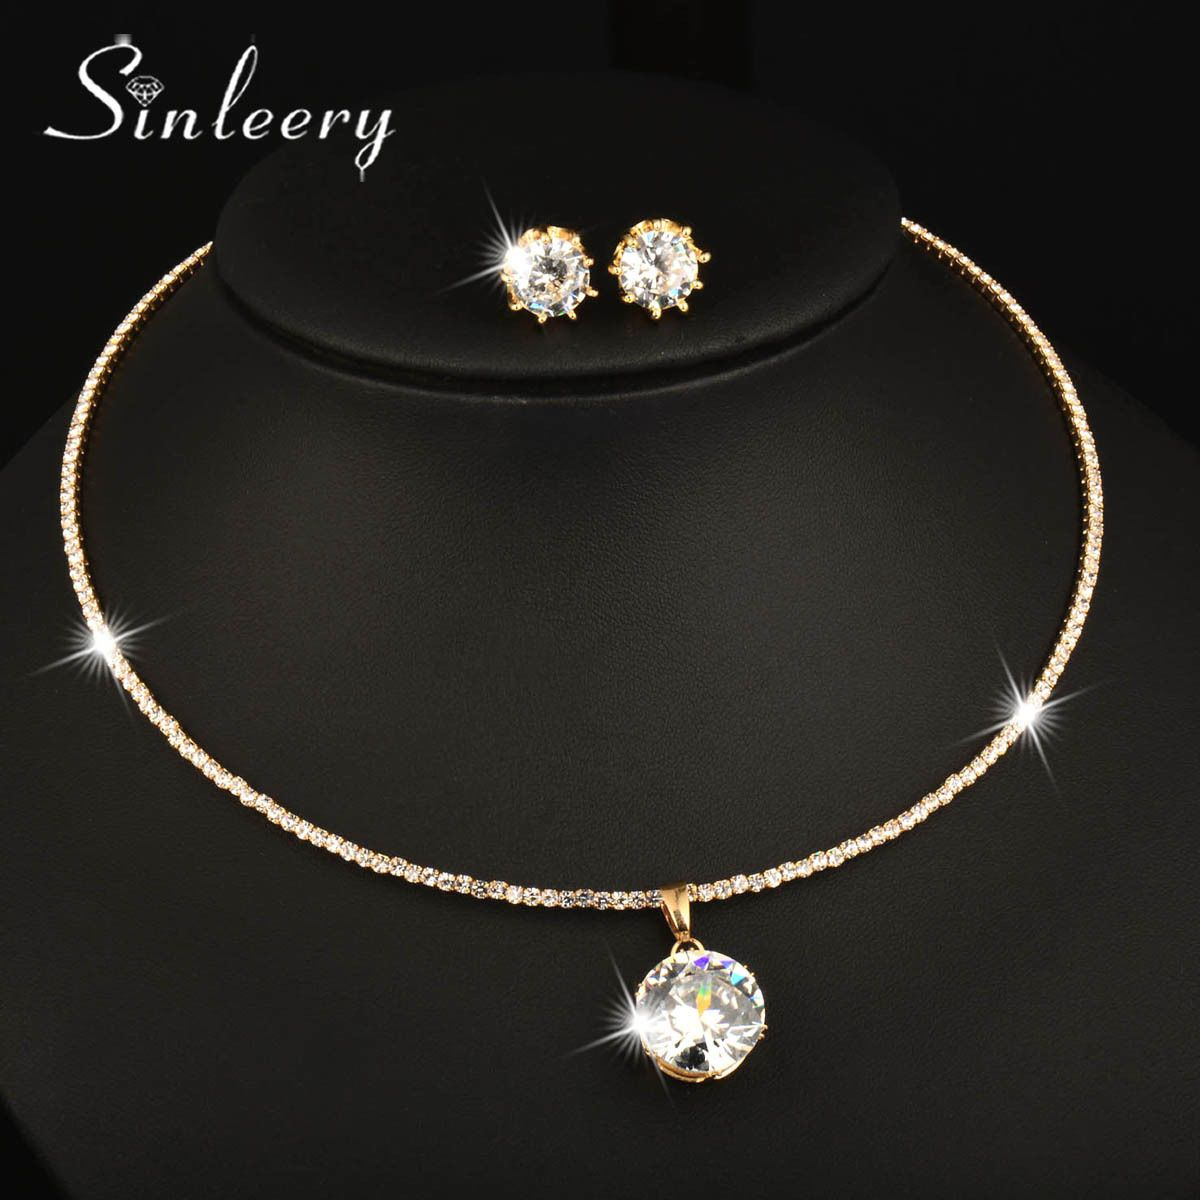 Women fashion round zircon choker collar necklace earrings set gold